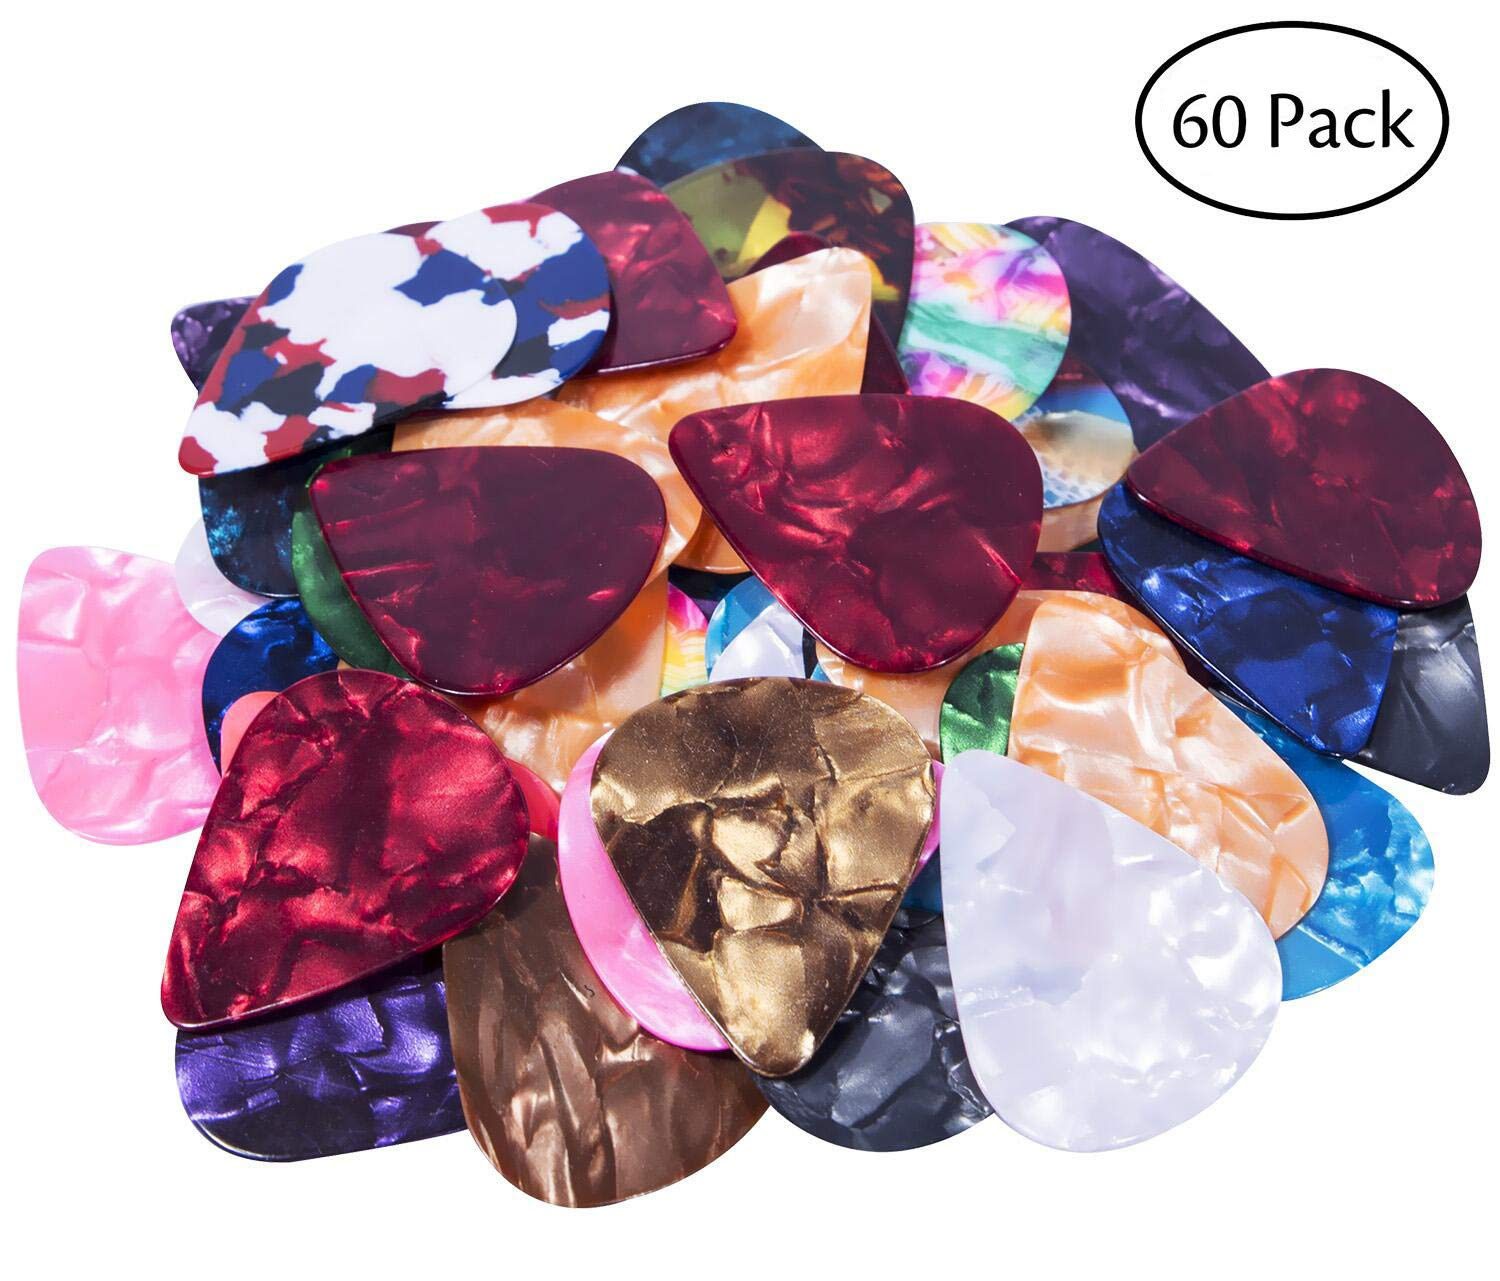 Gogogu 60 Pack Colorful Celluloid Guitar Picks Plectrums for Guitar Bass Includes 0.46mm, 0.71mm, 0.96mm 4334252971